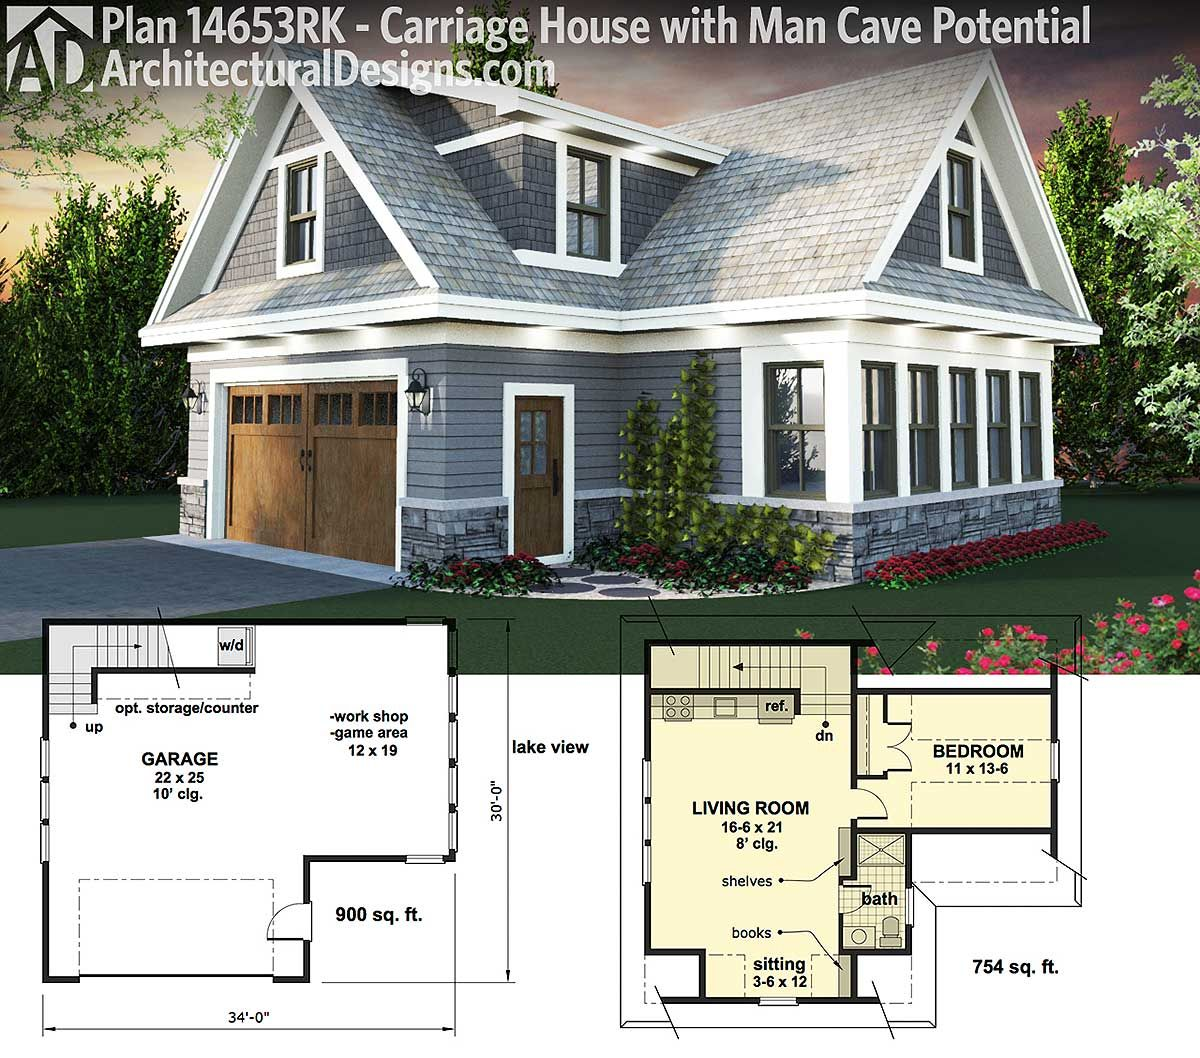 Tiny Home Designs: Plan 14653RK: Carriage House Plan With Man Cave Potential